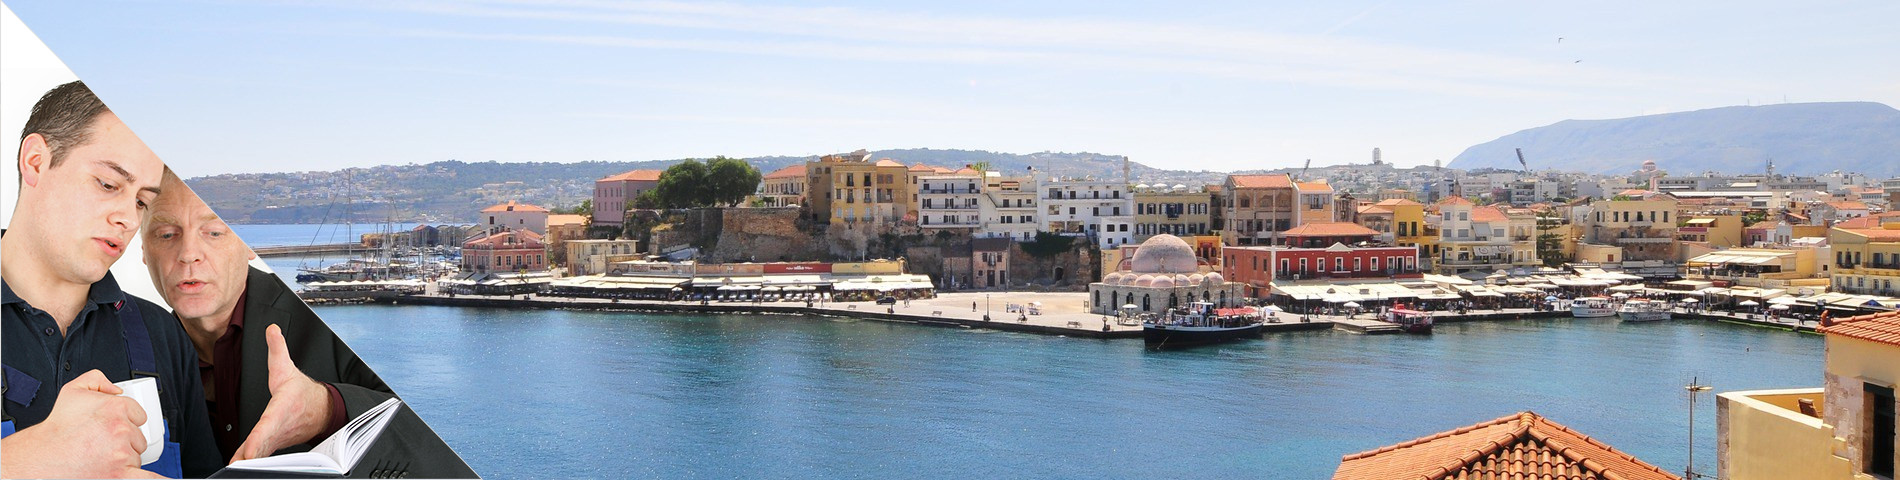 Chania (Crete) - One-to-One